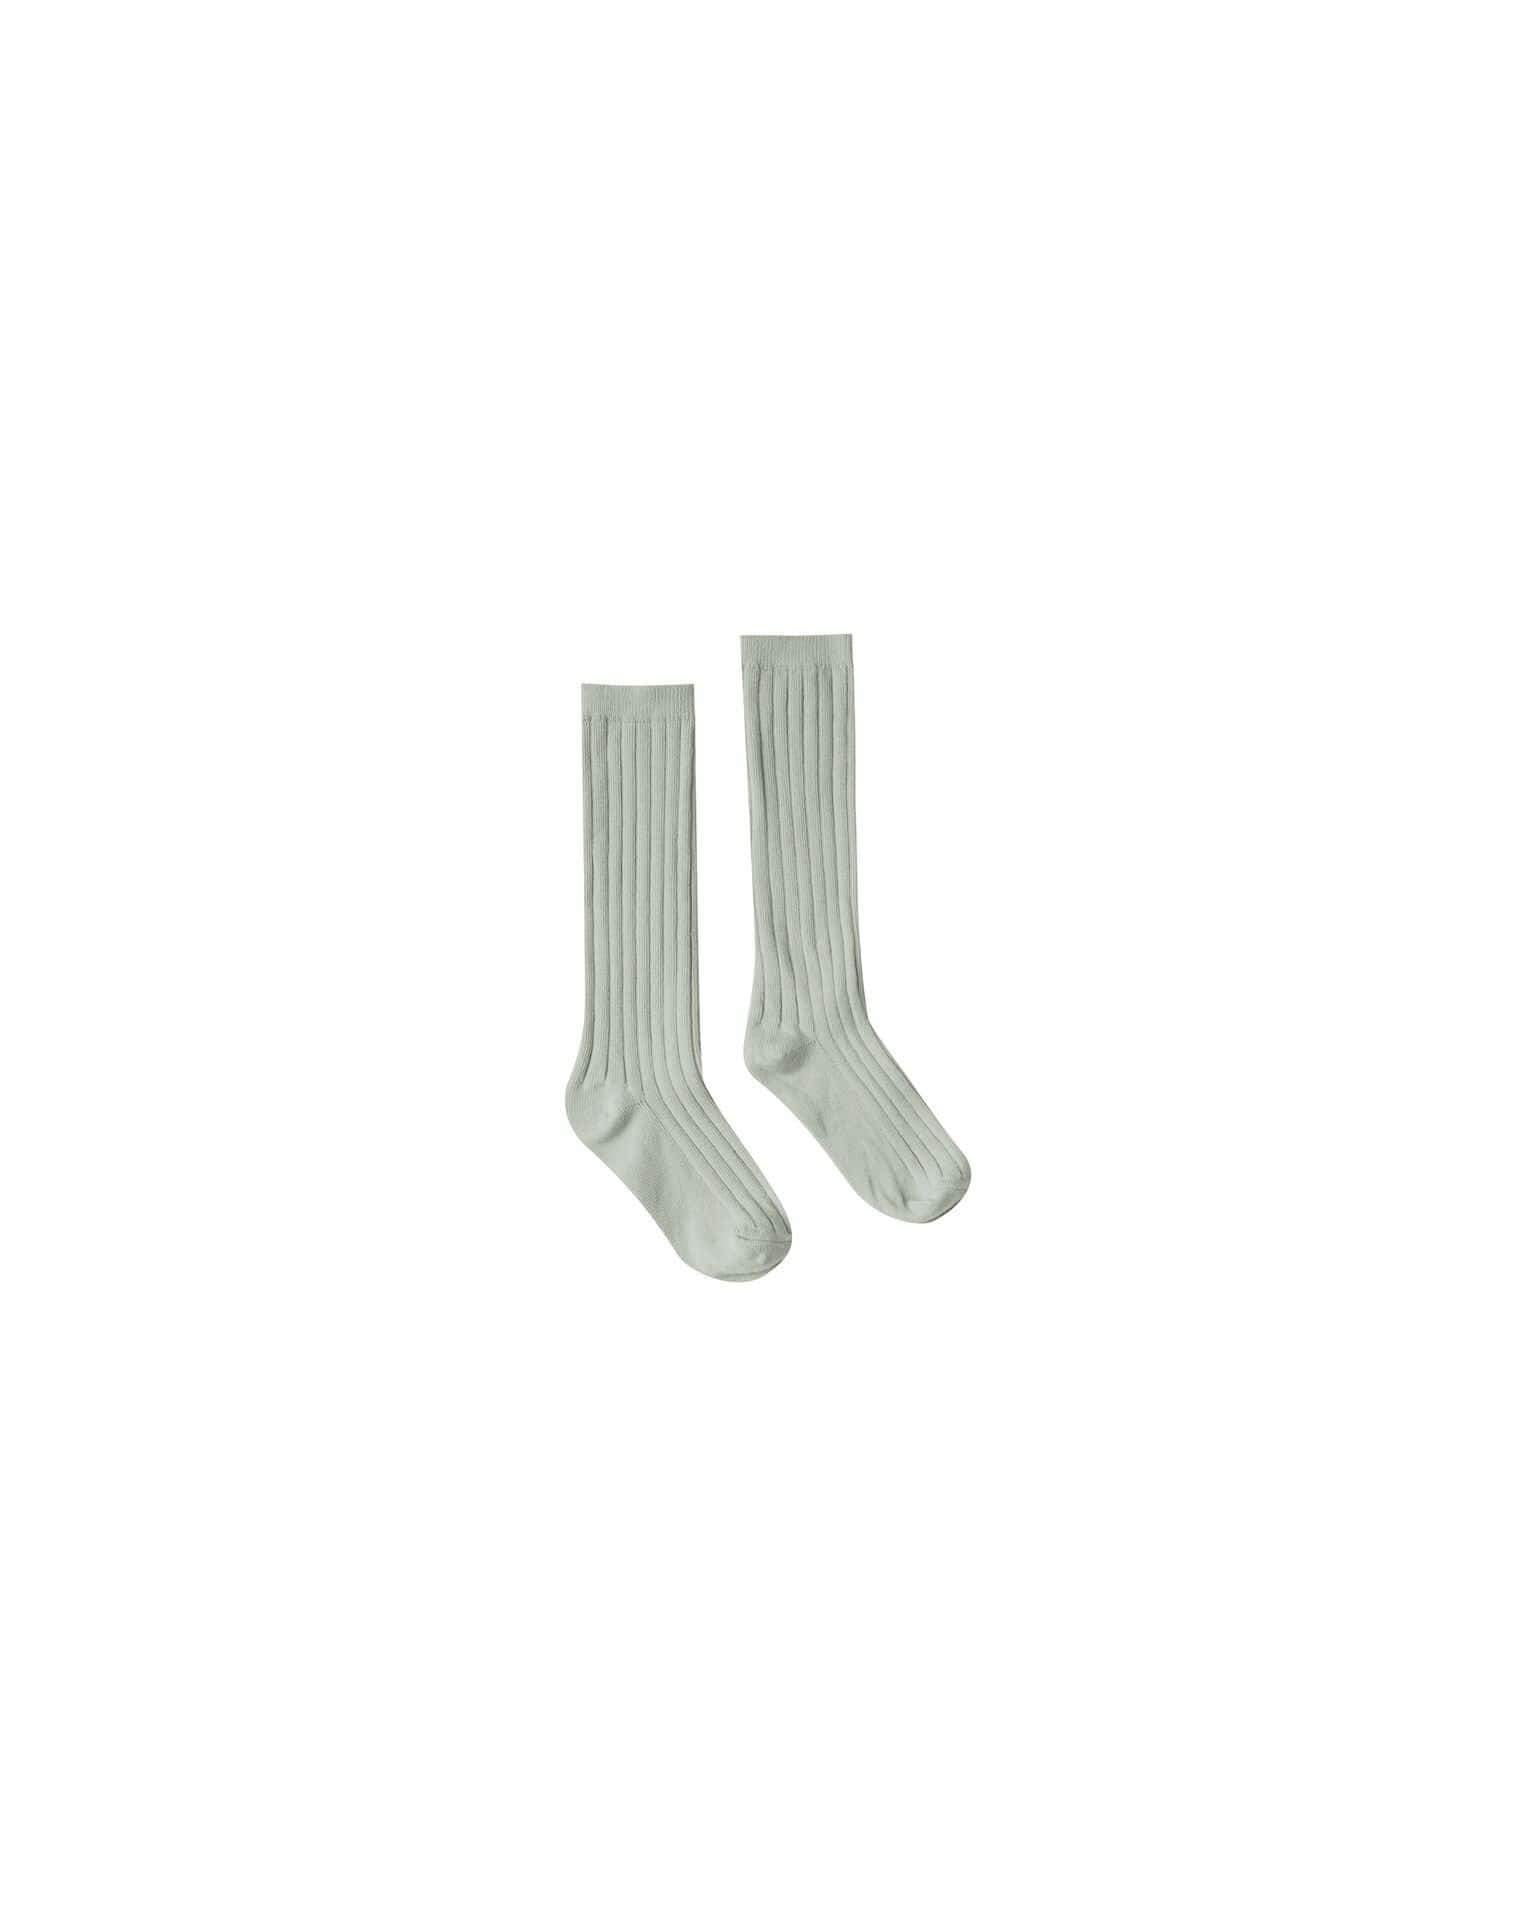 Rylee & Cru Socks Solid Ribbed Socks - Seaform